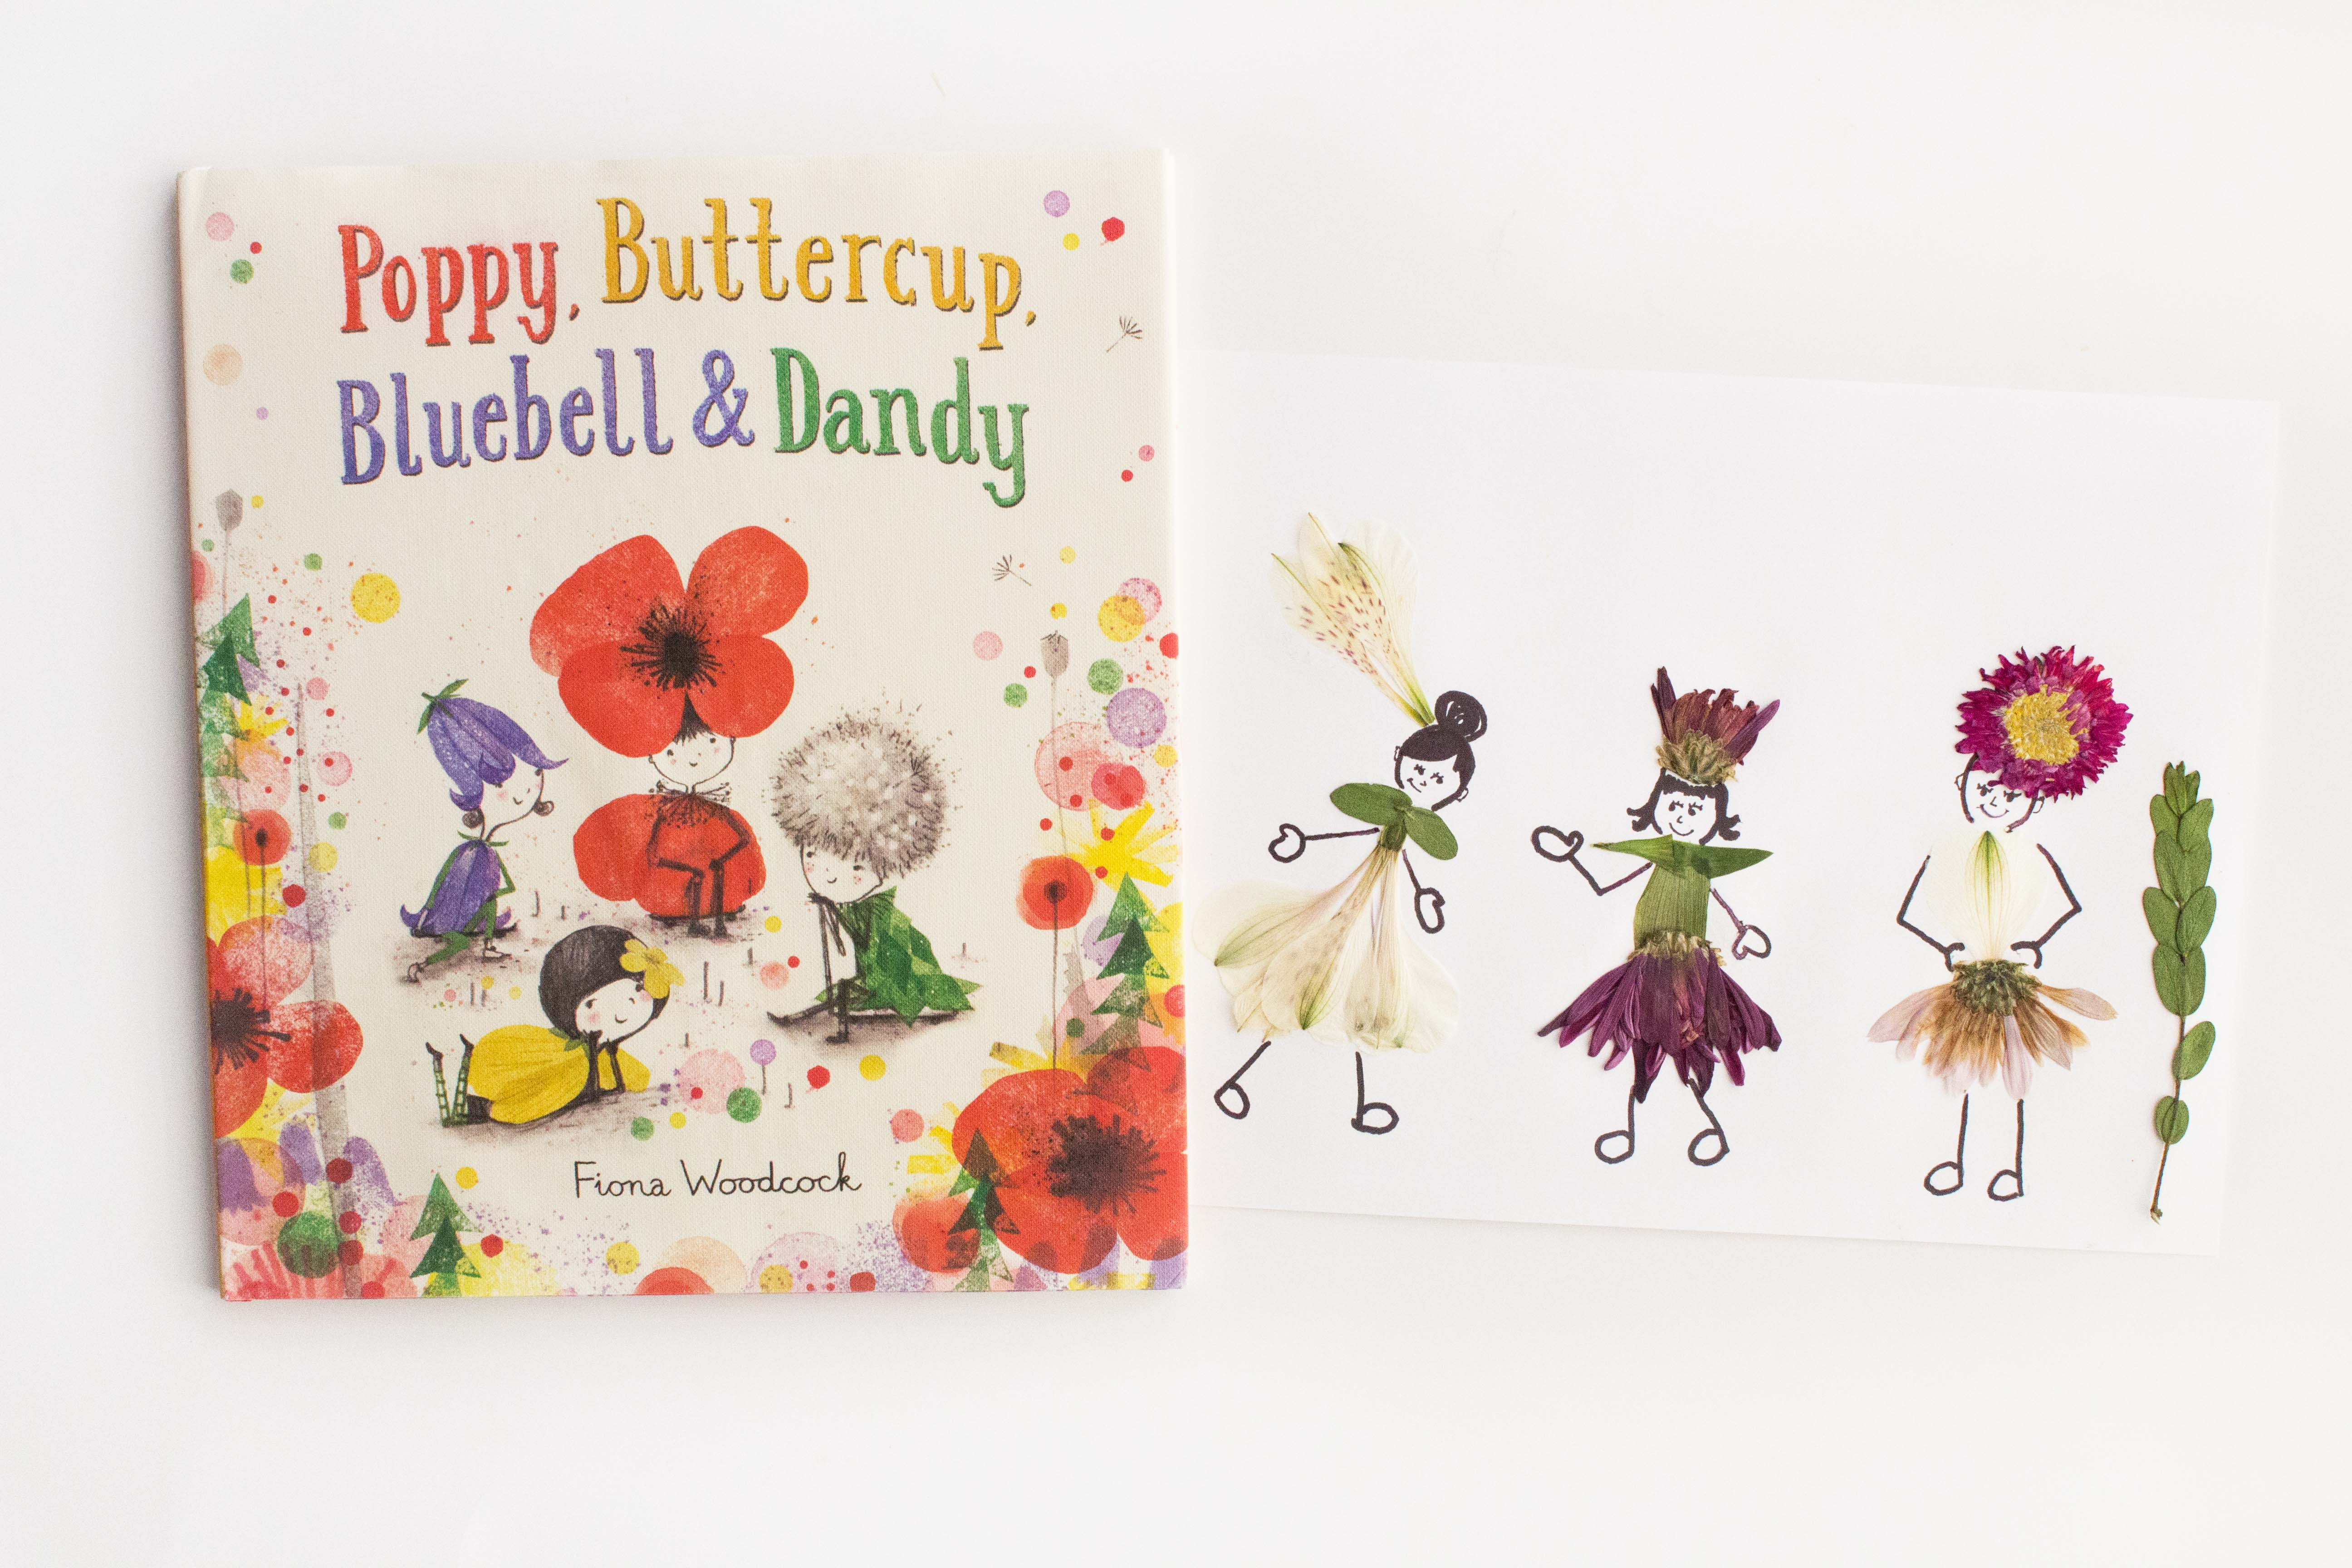 Flower Girl Craft Inspired By Poppy Bluebell Buttercup And Dandy